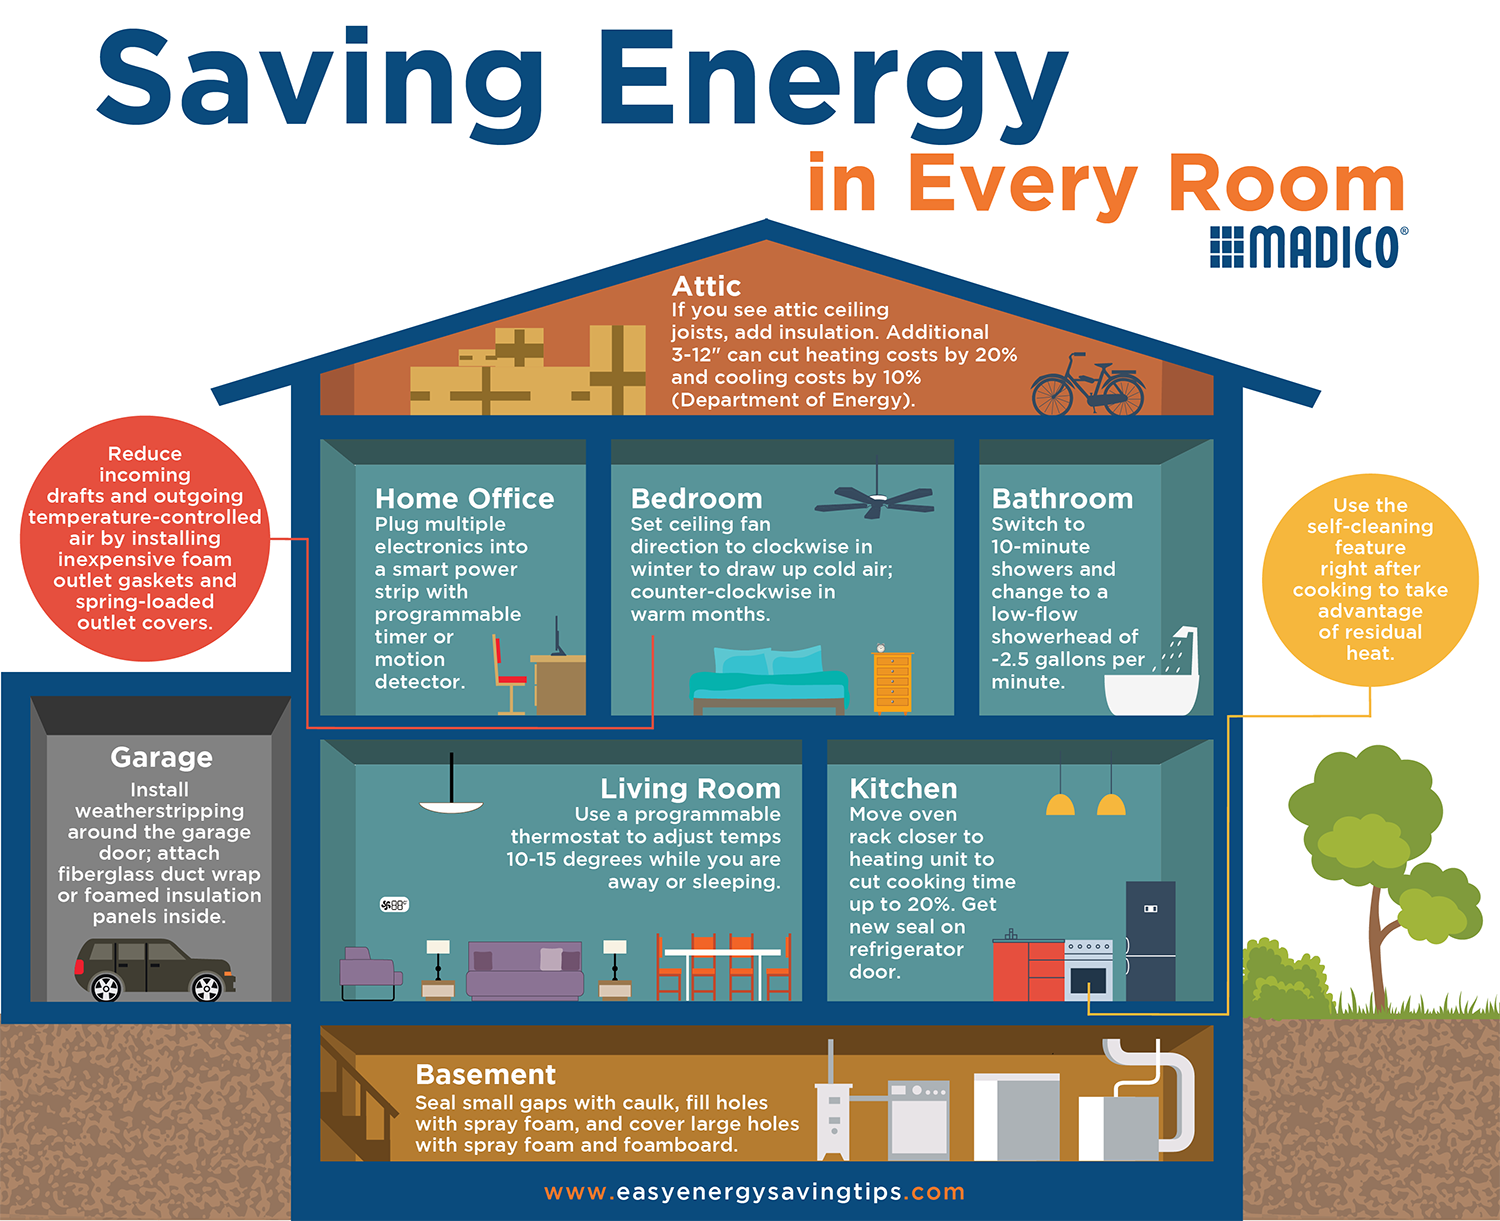 Saving-Energy-in-Every-Room-Infographic-003